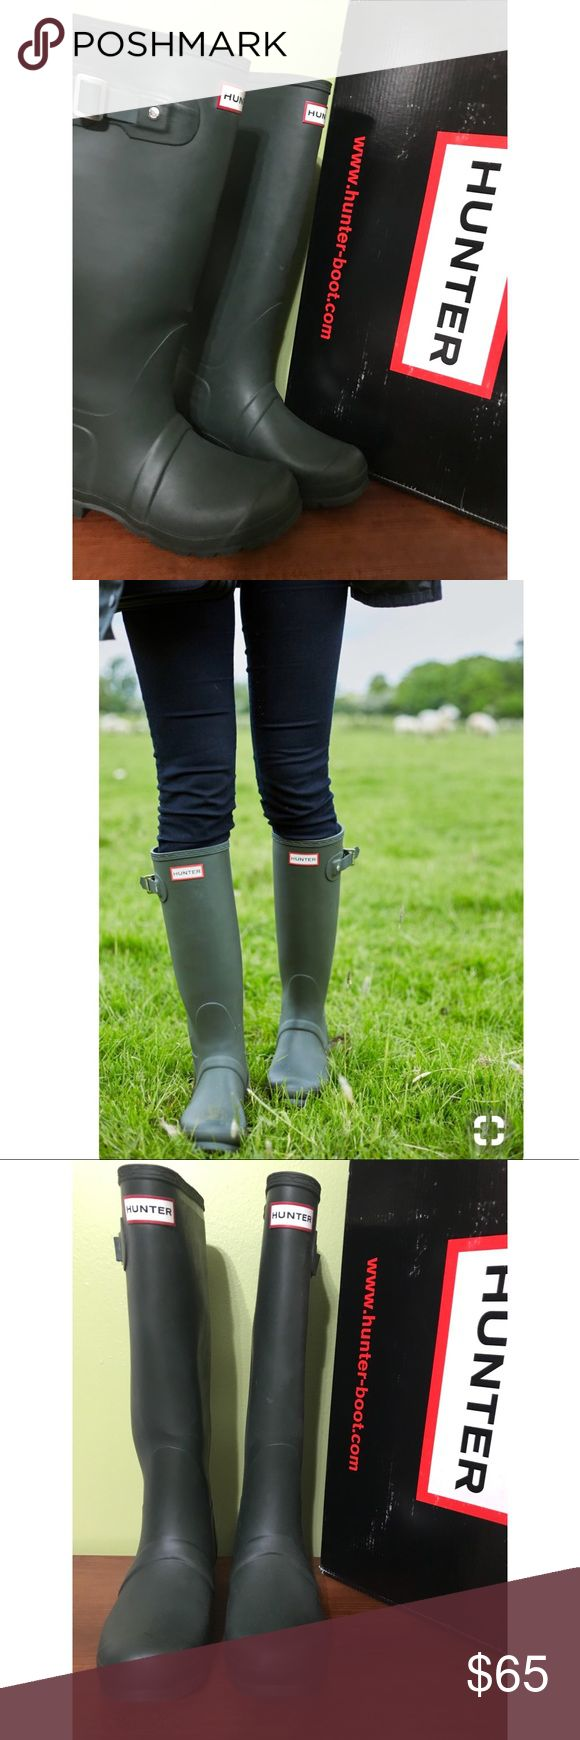 Authentic - Dark Olive Tall Hunter Rain Boots Dark Olive matte like hunter boots. Excellent condition, worn ONLY once - like new with original box.  Size US6/7F, UK5,EU38. - Style # W23499.ñ Hunter Boots Shoes Winter & Rain Boots